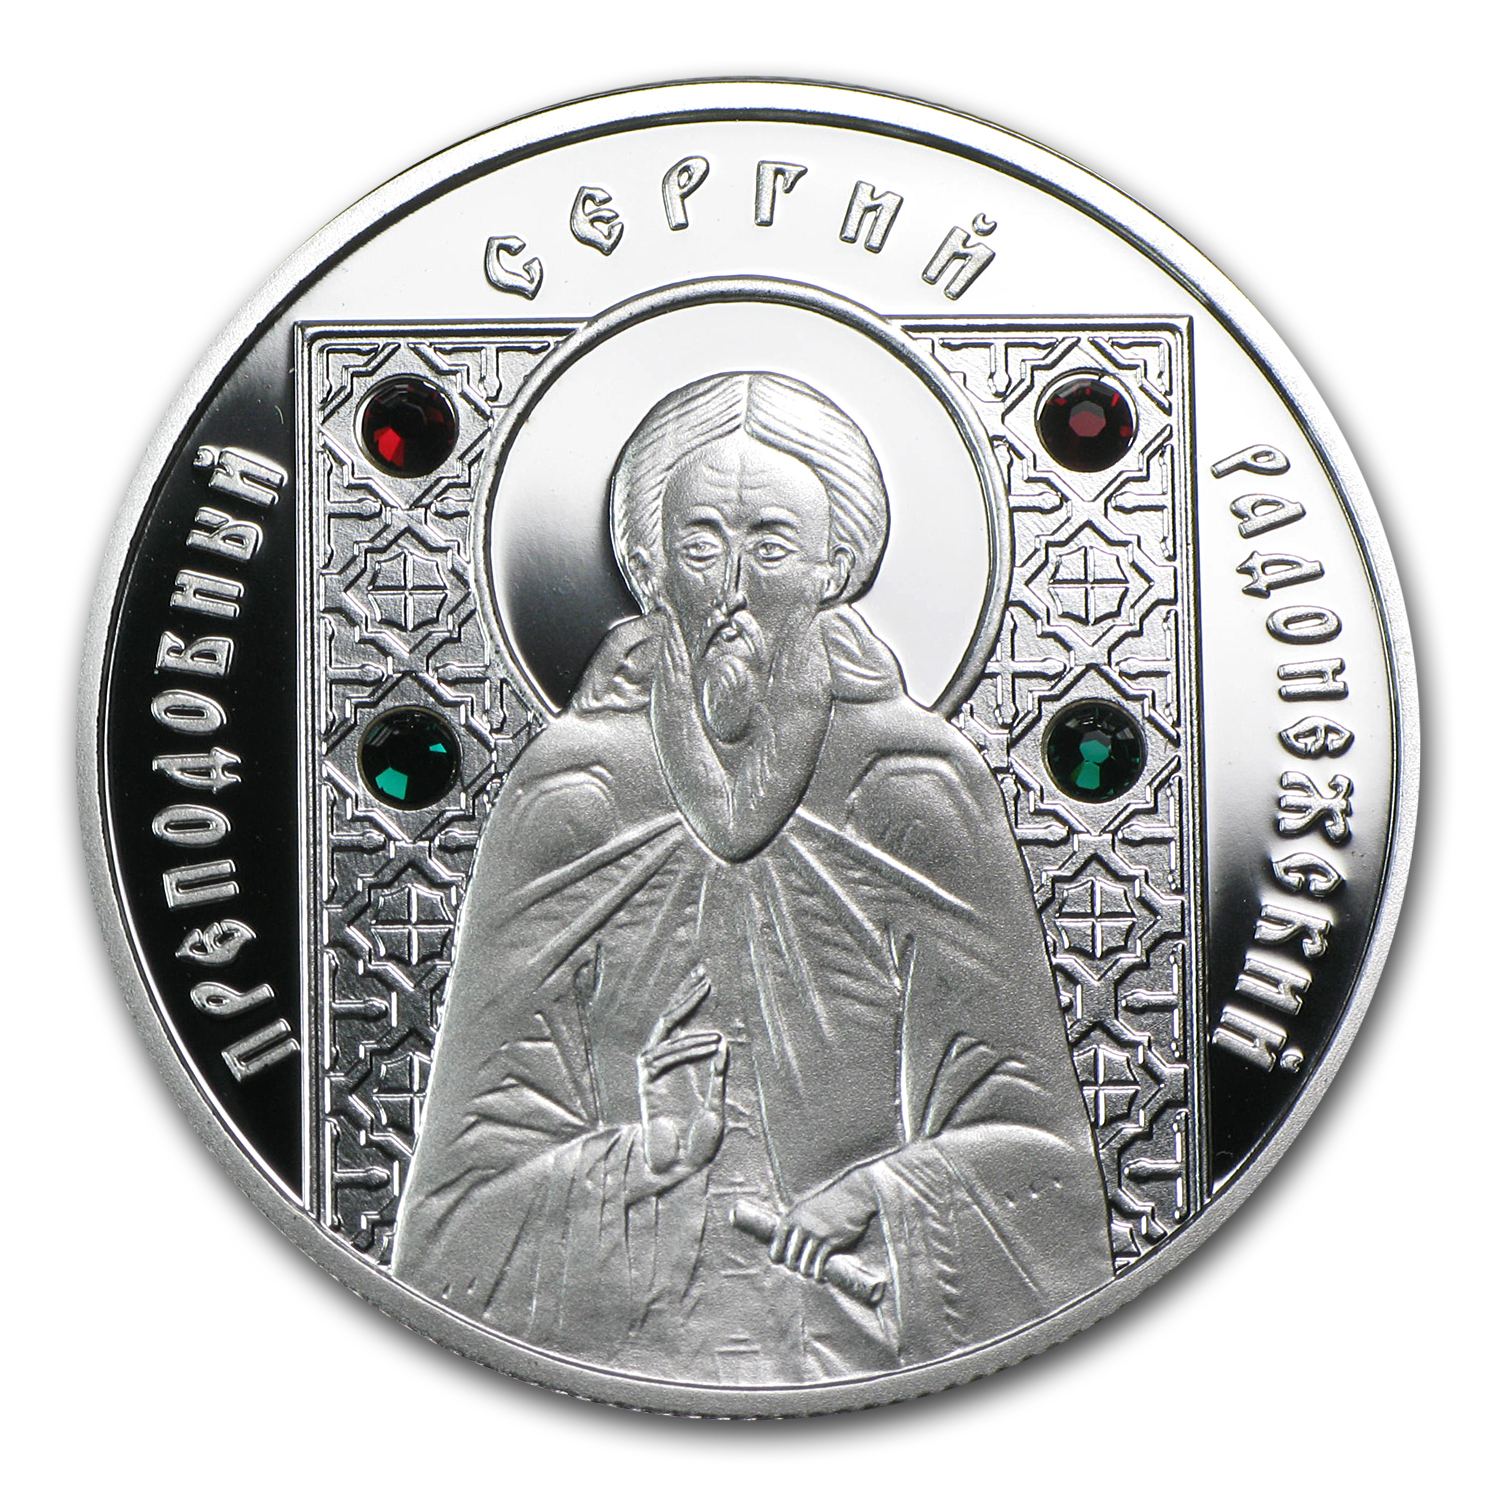 Belarus 2008 Silver Saints of Orthodox - St. Sergey Radonezhsky